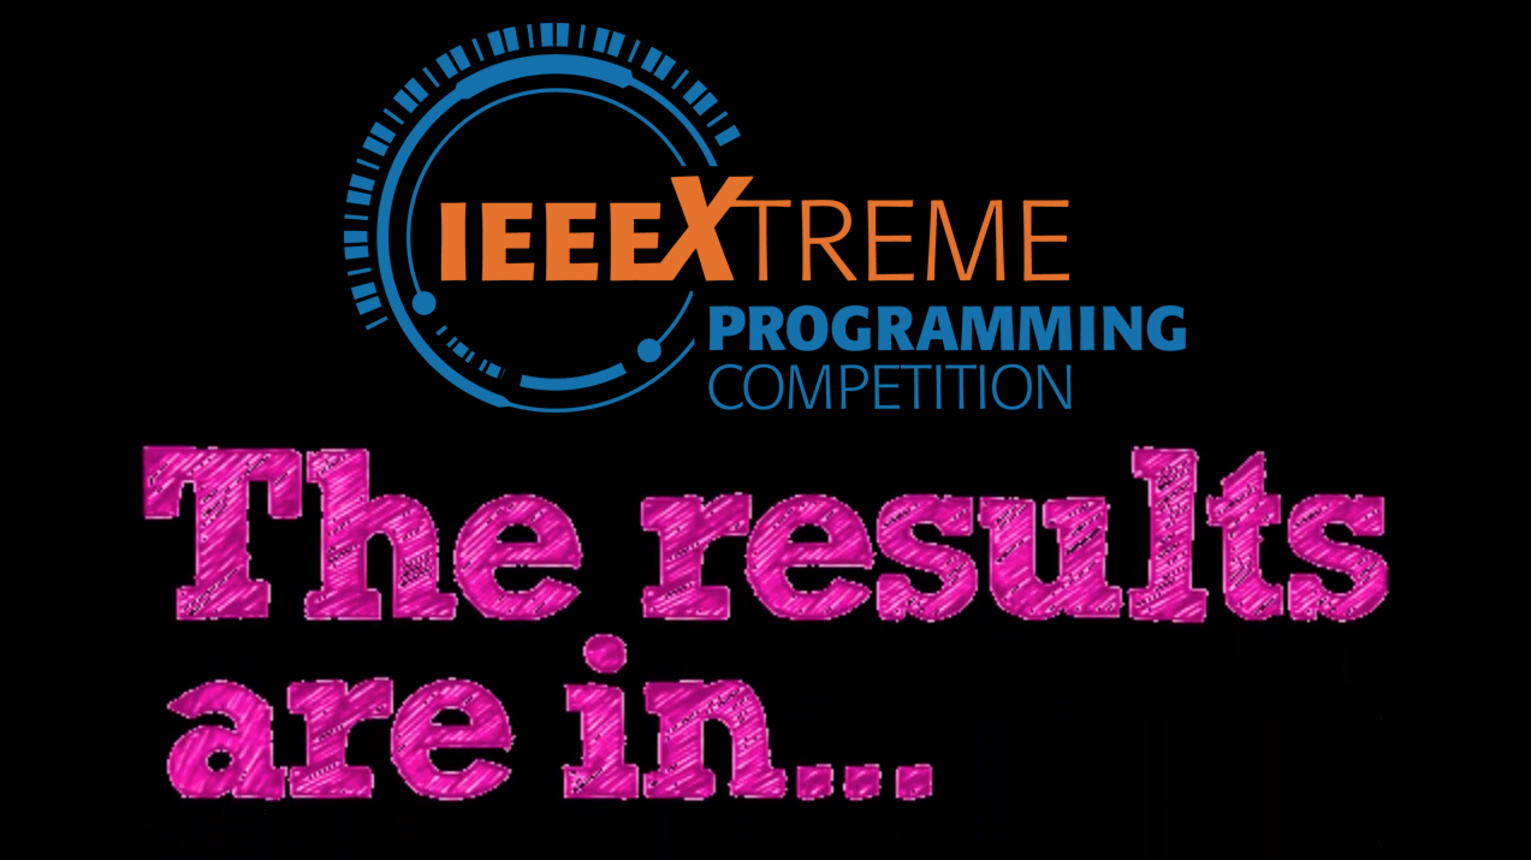 IEEE Xtreme 11.0 Results Announcement